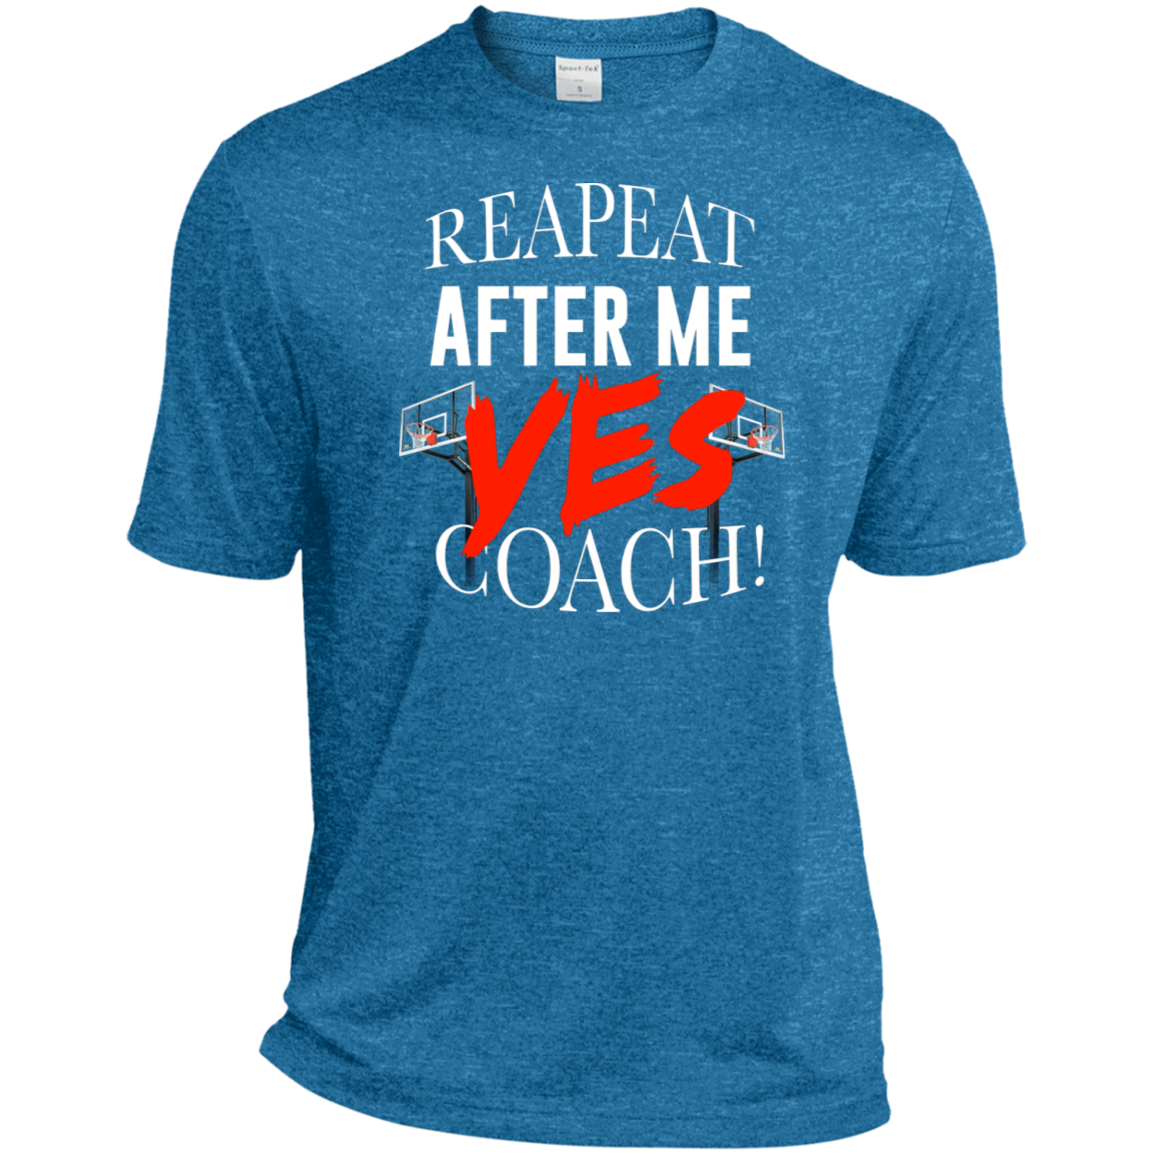 GTStyles Repeat after me Yes, coach T-shirt Sport-Tek Heather Dri-Fit Moisture-Wicking T-Shirt